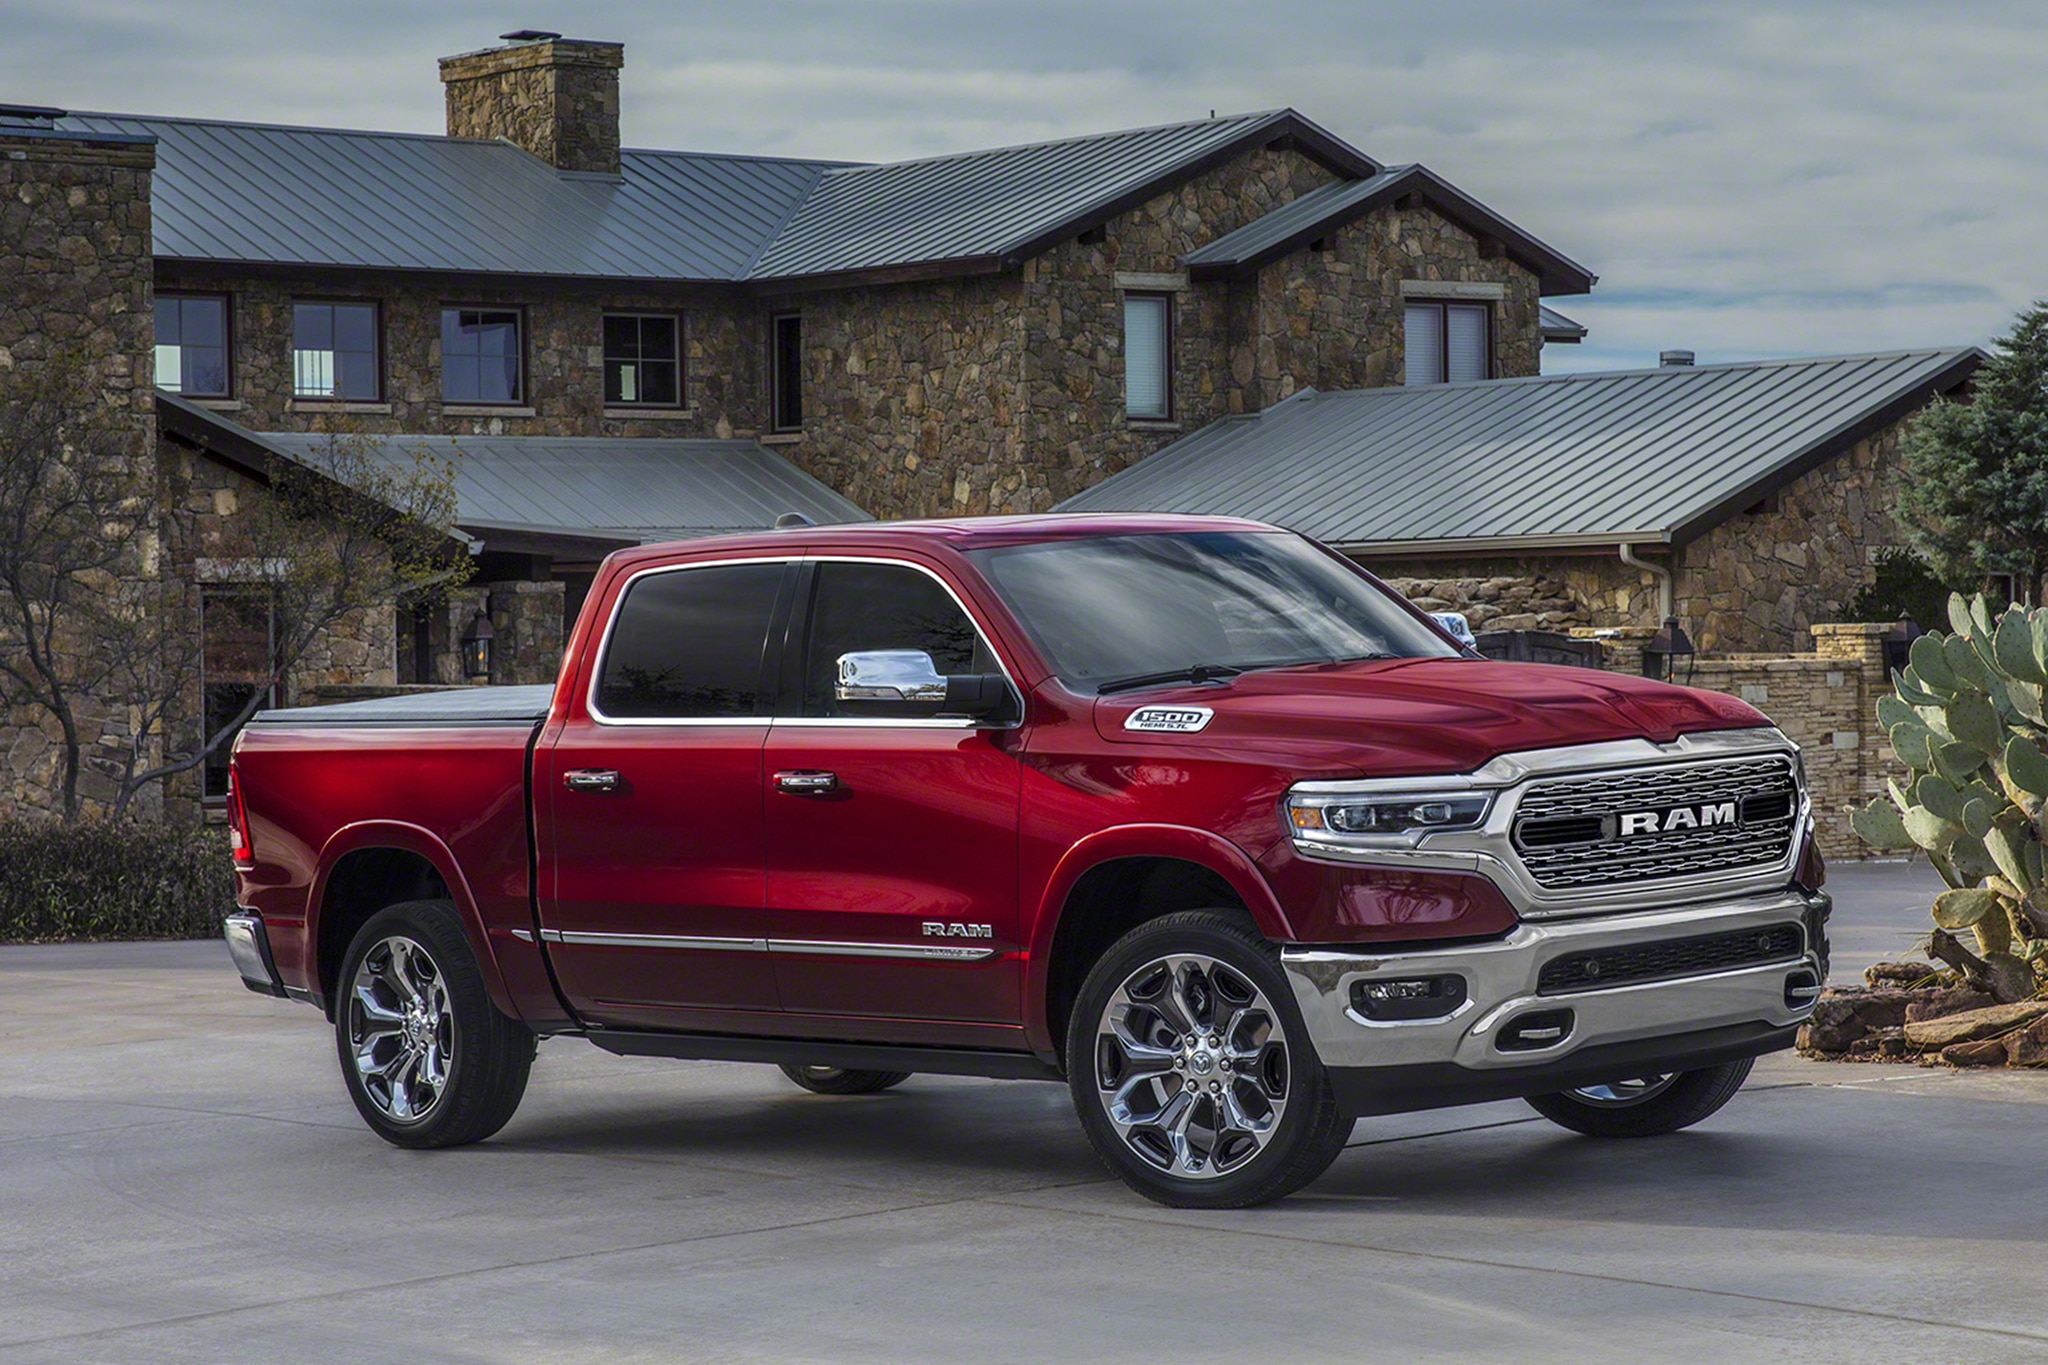 Chevrolet completely redesigns full-size truck for 2019